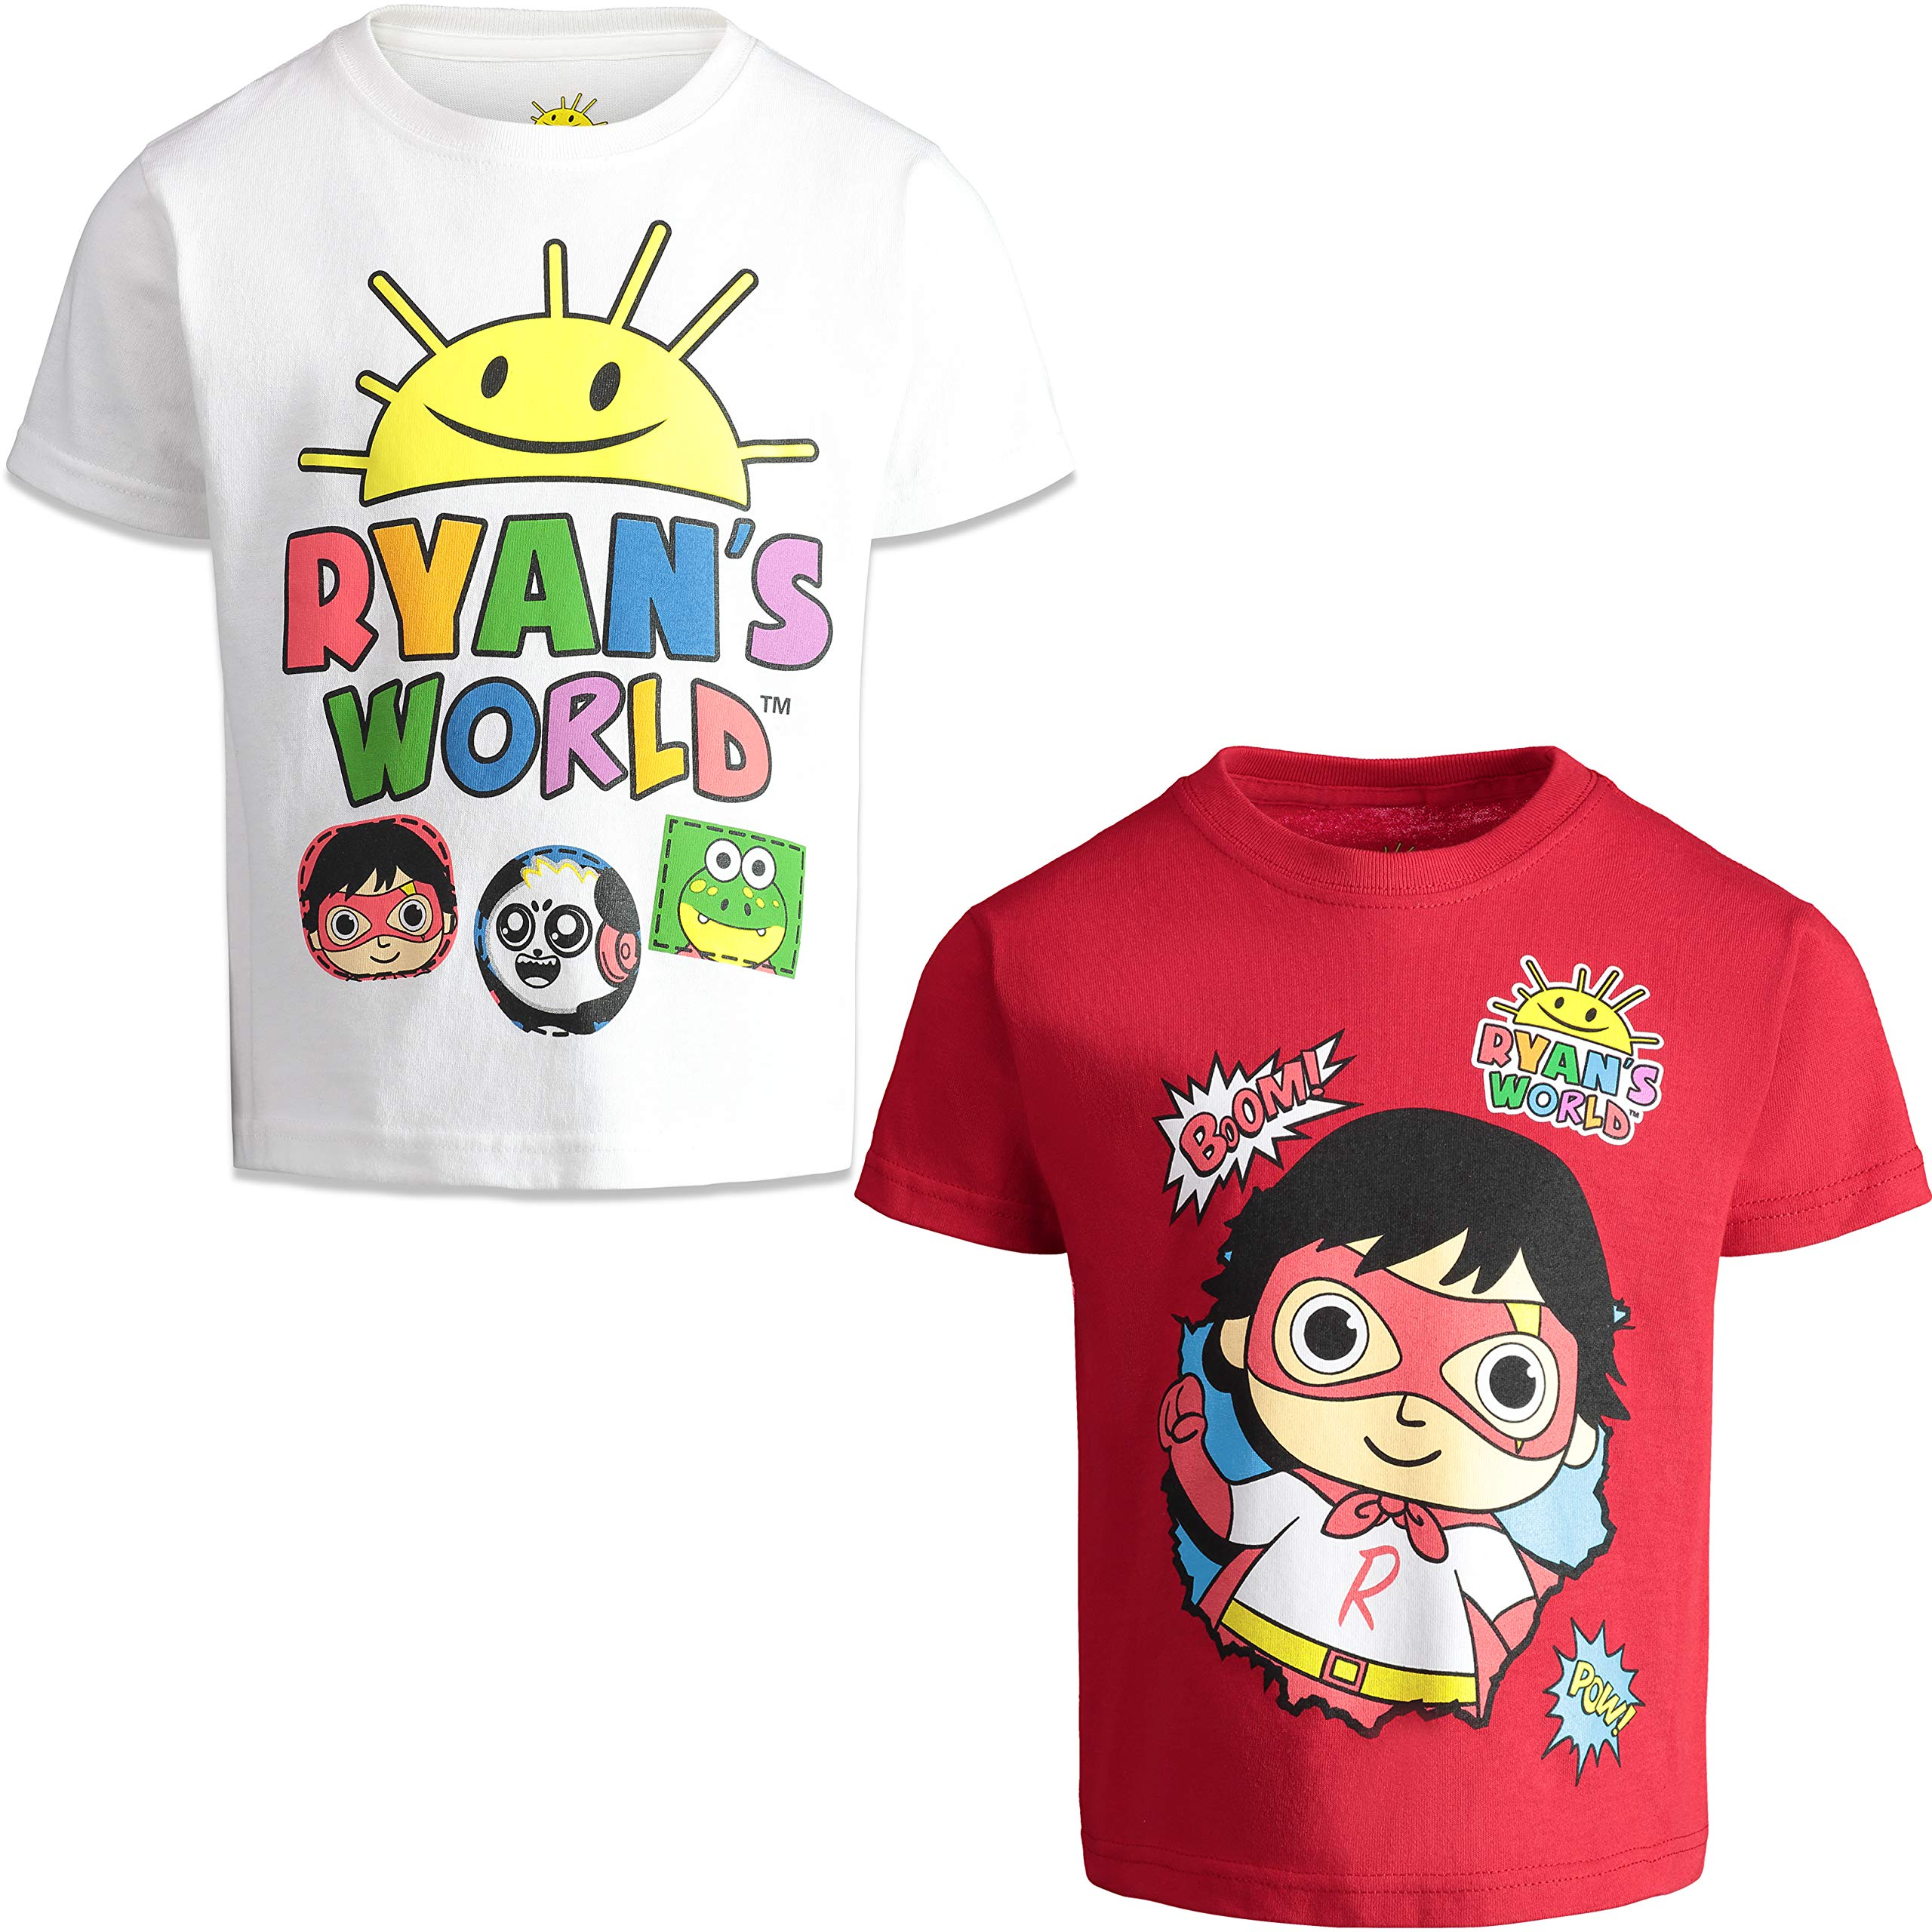 RYAN'S WORLD Boys' Short-Sleeve T-Shirts 2-Pack Graphic Tees, Little Kids 5T White/Red